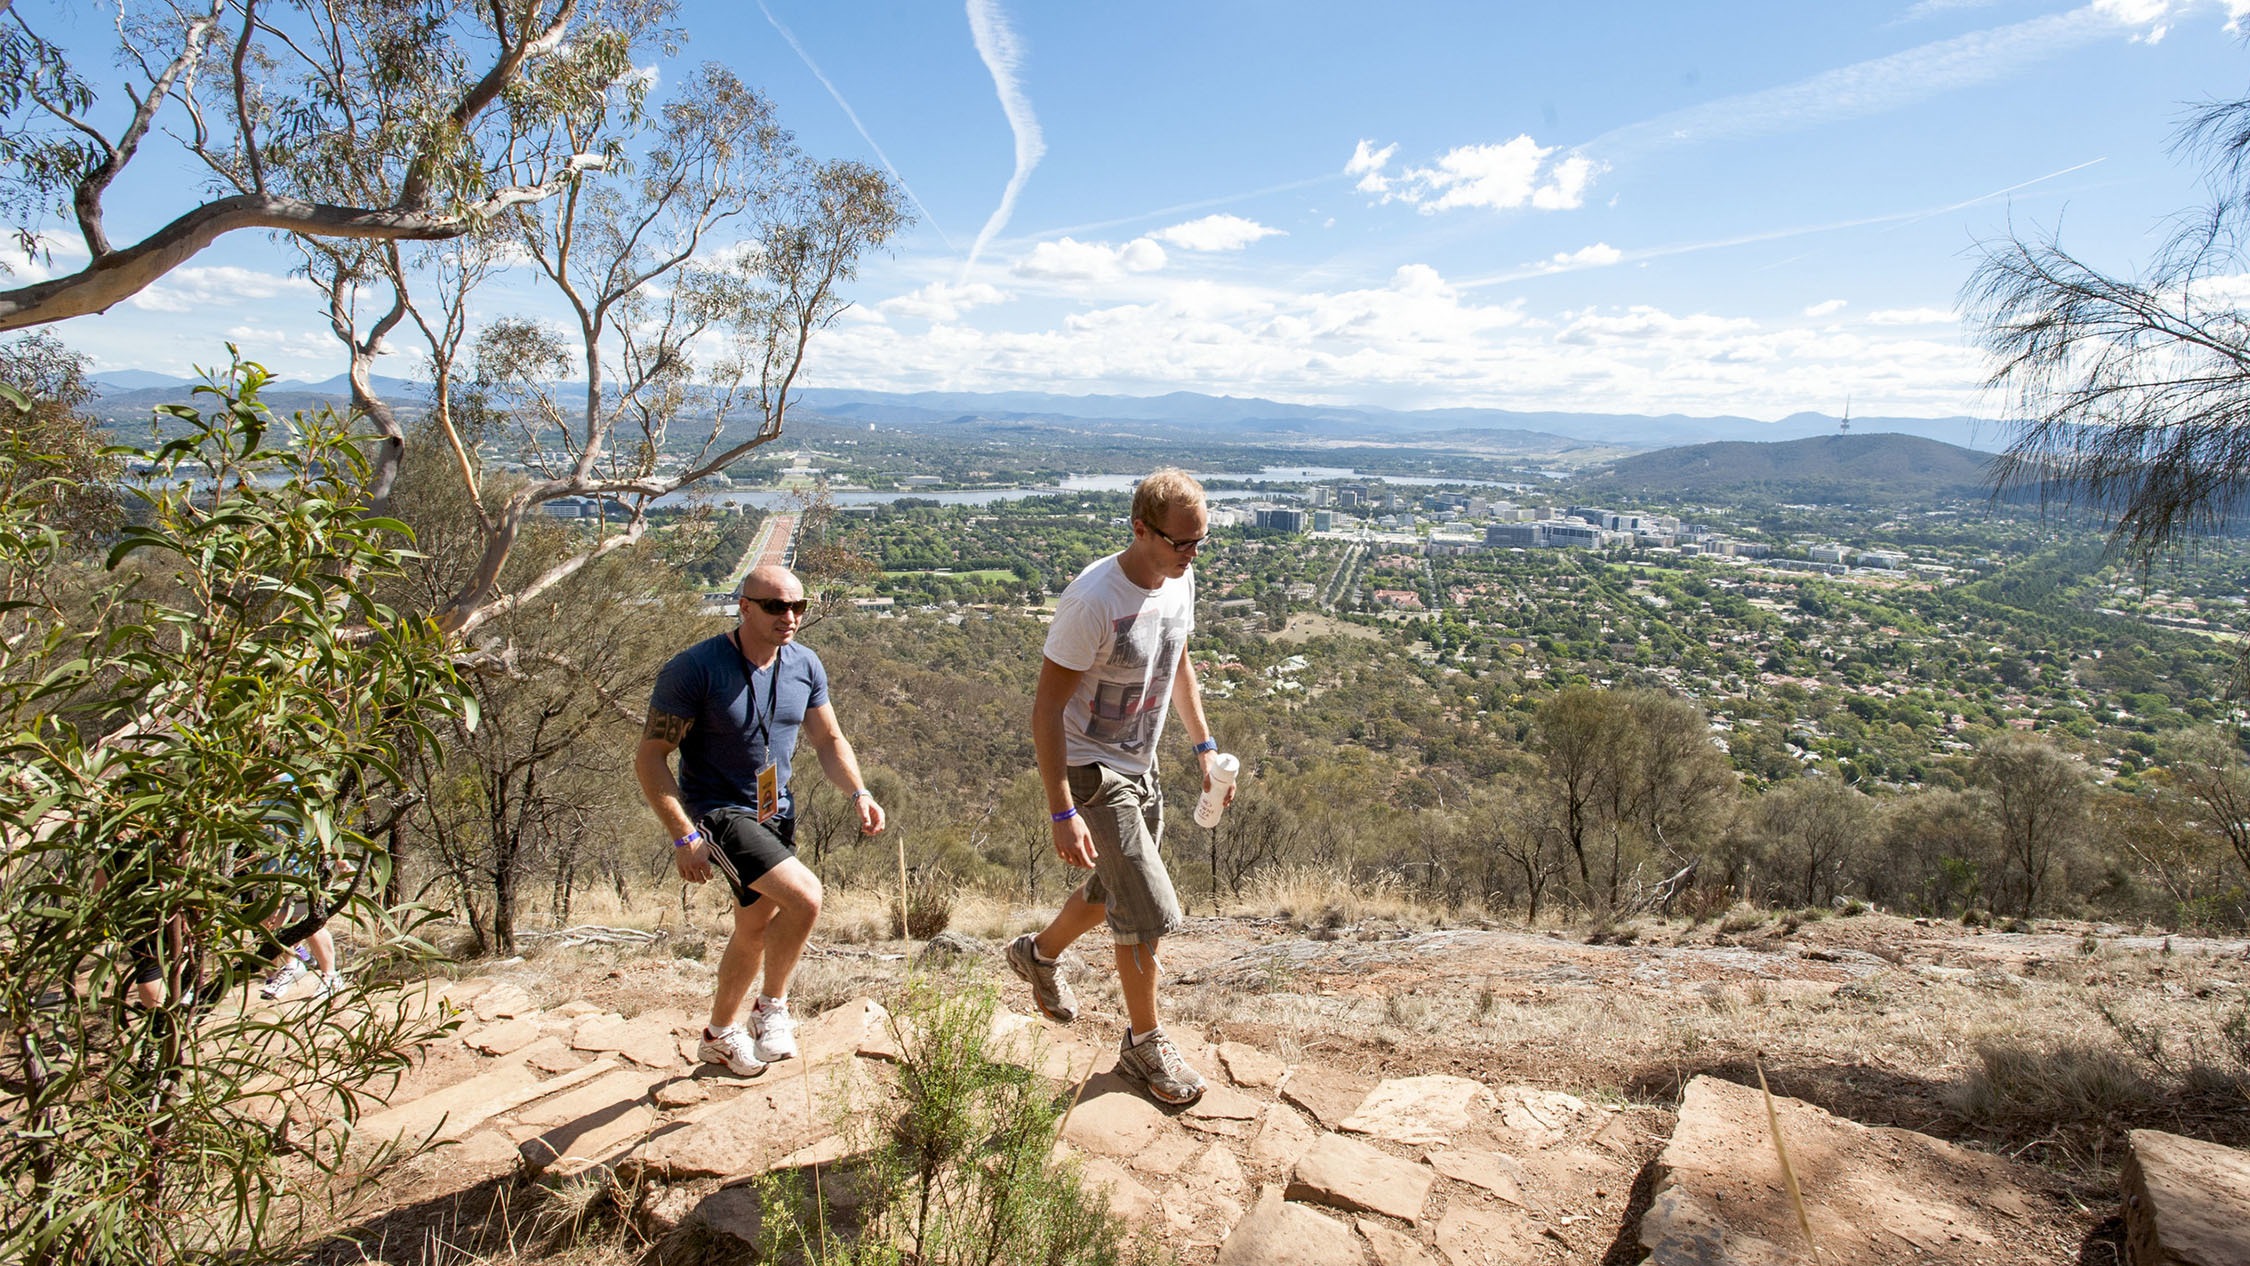 Outdoors activities in Canberra